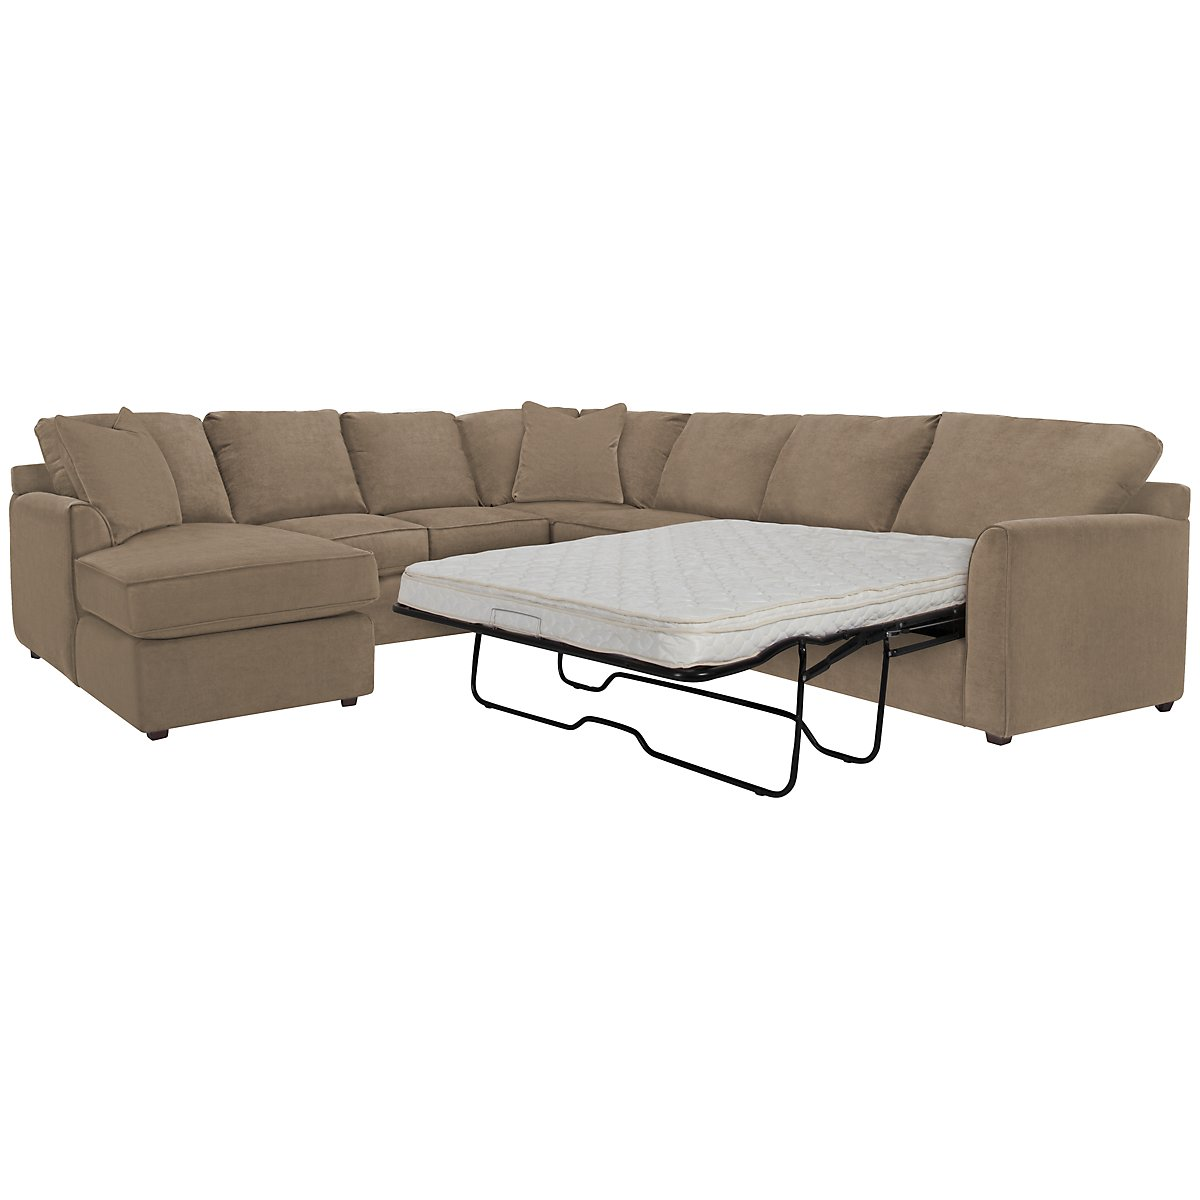 Express3 Lt Brown Microfiber Left Chaise Innerspring Sleeper Sectional